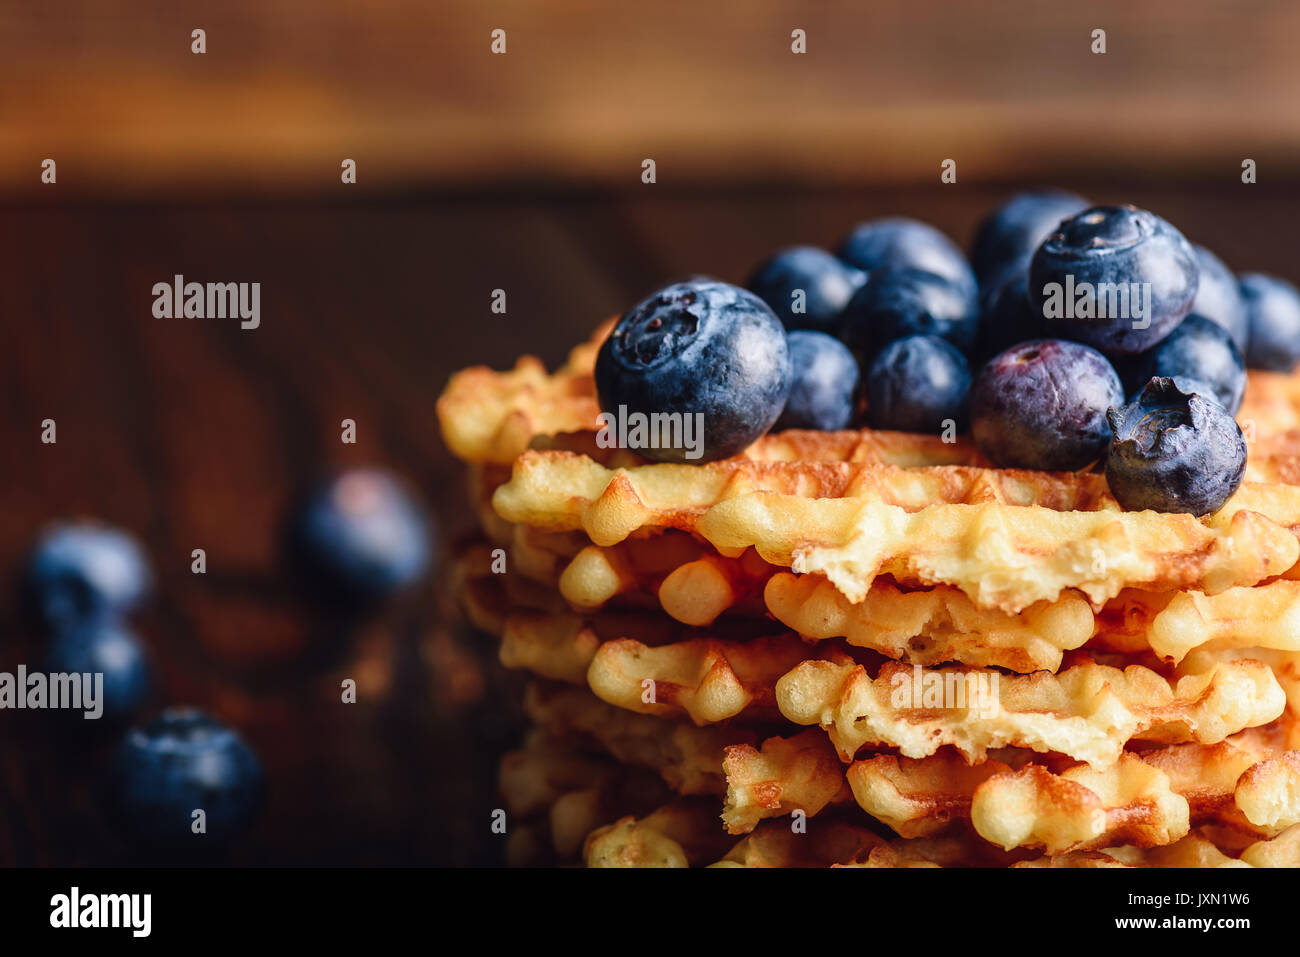 Blueberries on the Top of the Waffles Stack and Other Scattered on Wooden Background. - Stock Image